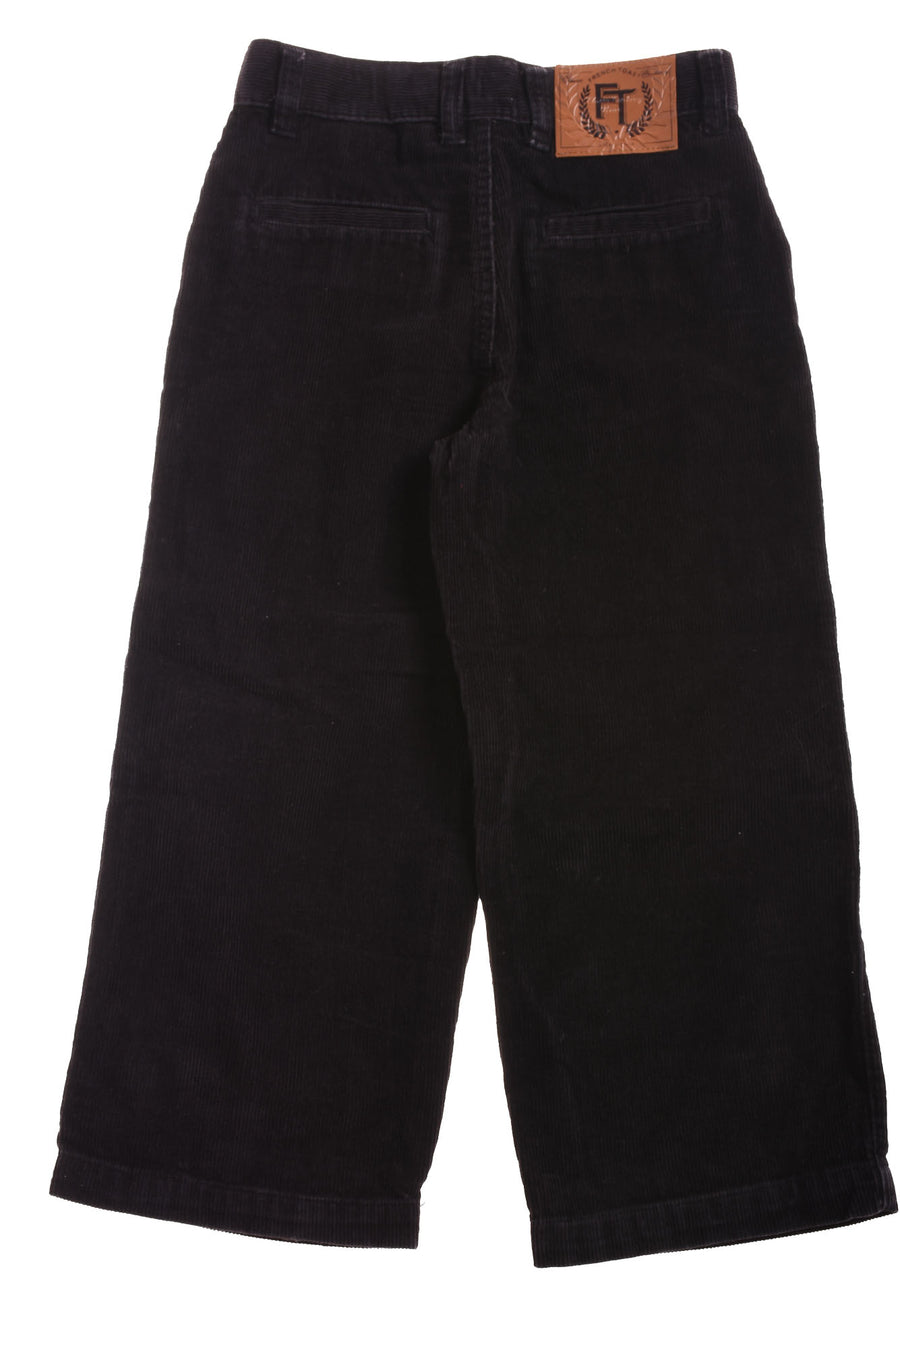 USED French Toast Toddler Boy's Pants 5 Black